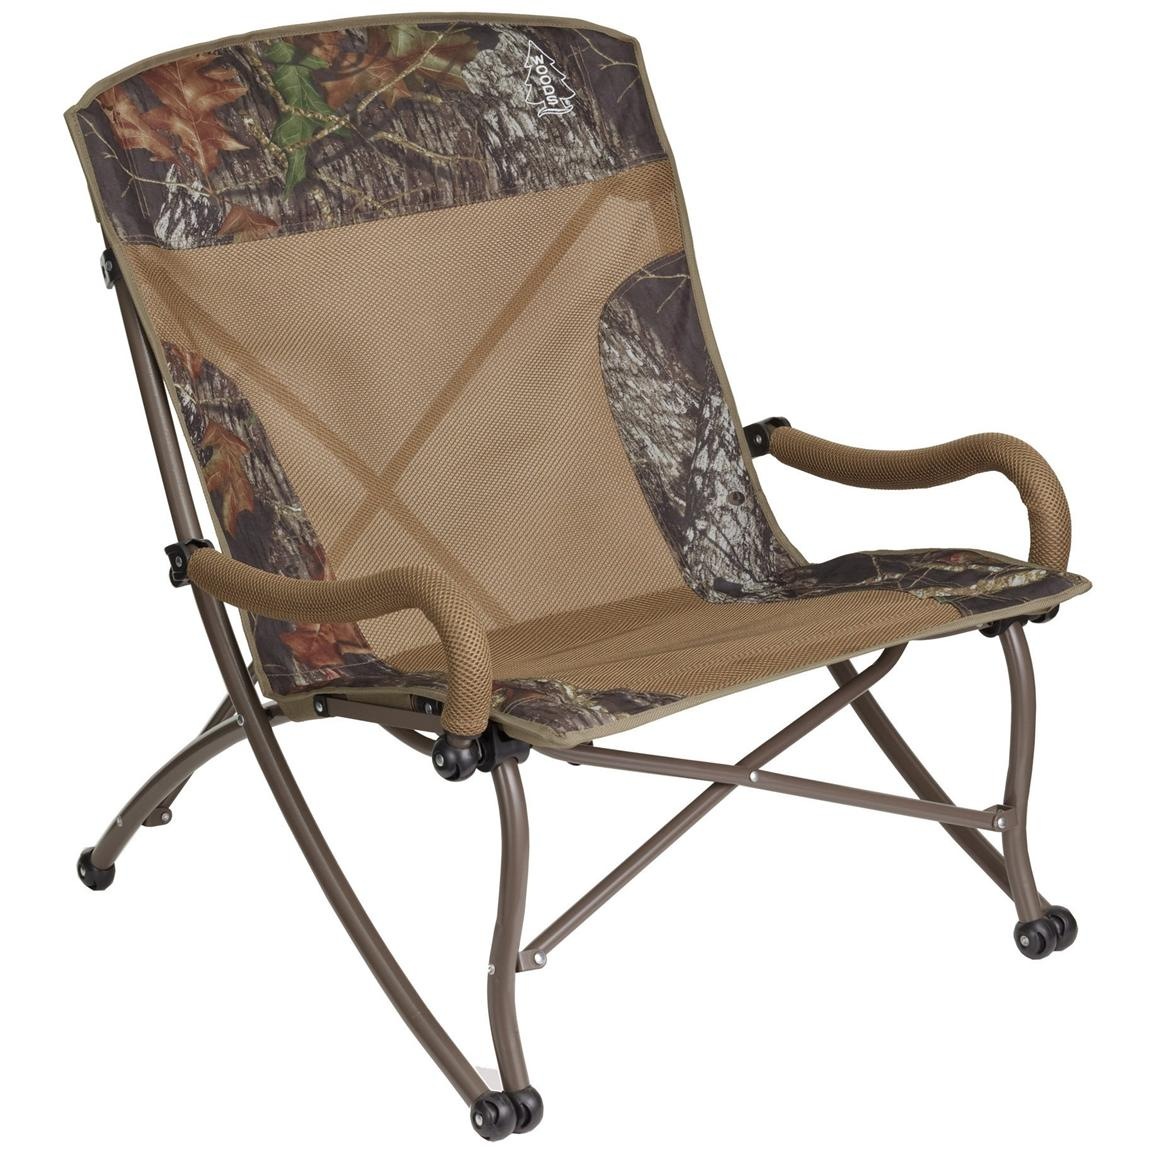 Camo Folding Chair Woods Camo Mesh Frontier Chair 202571 Chairs At